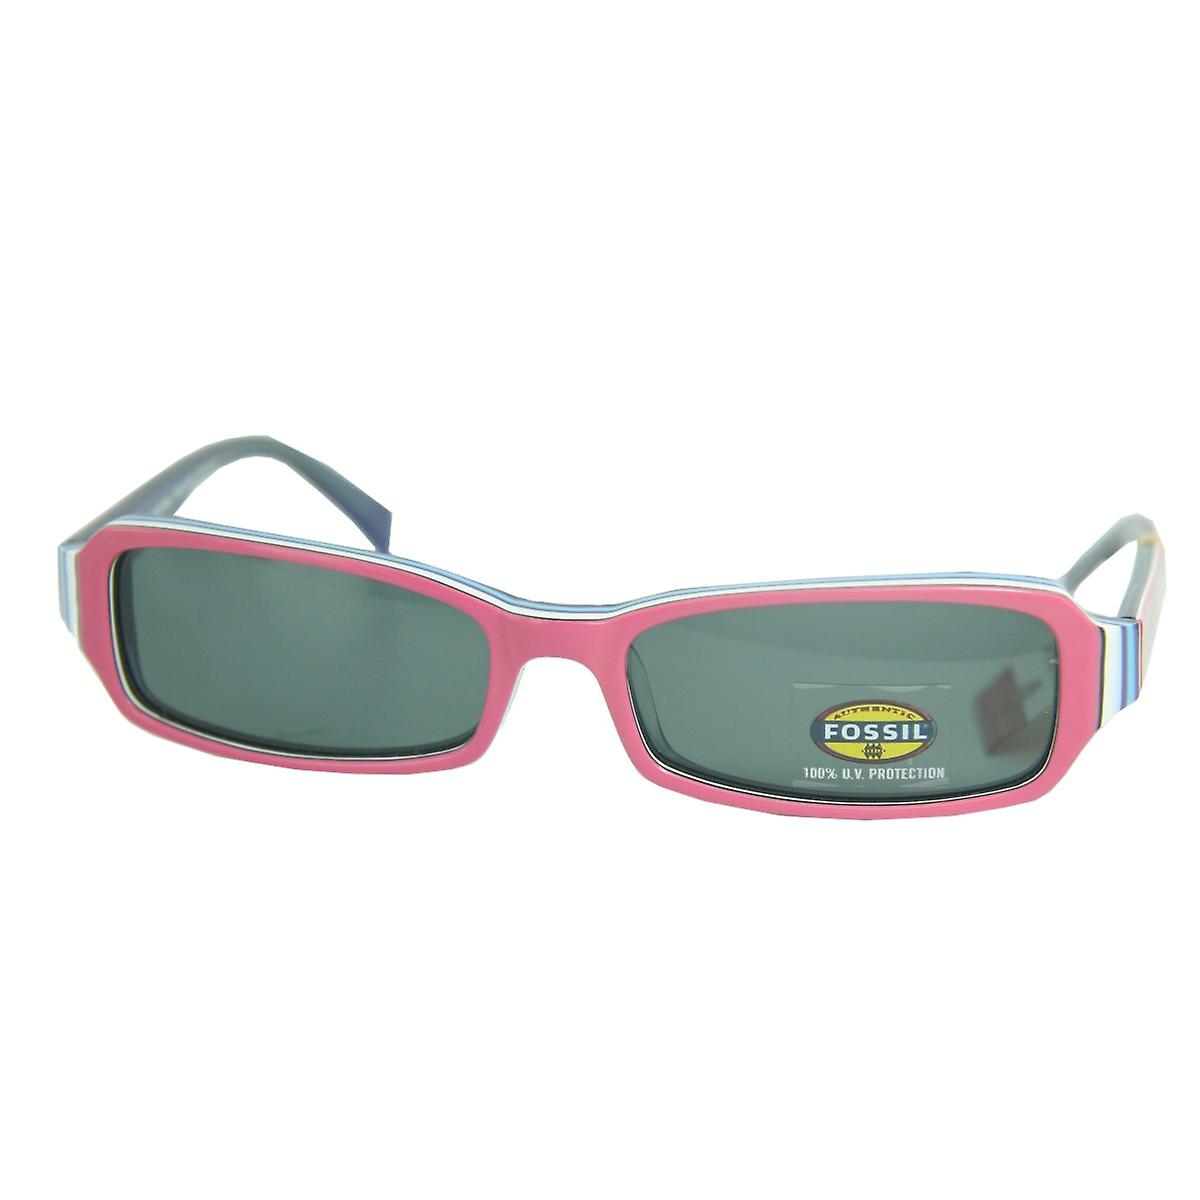 Fossil sunglasses San Cristobal PS3510660